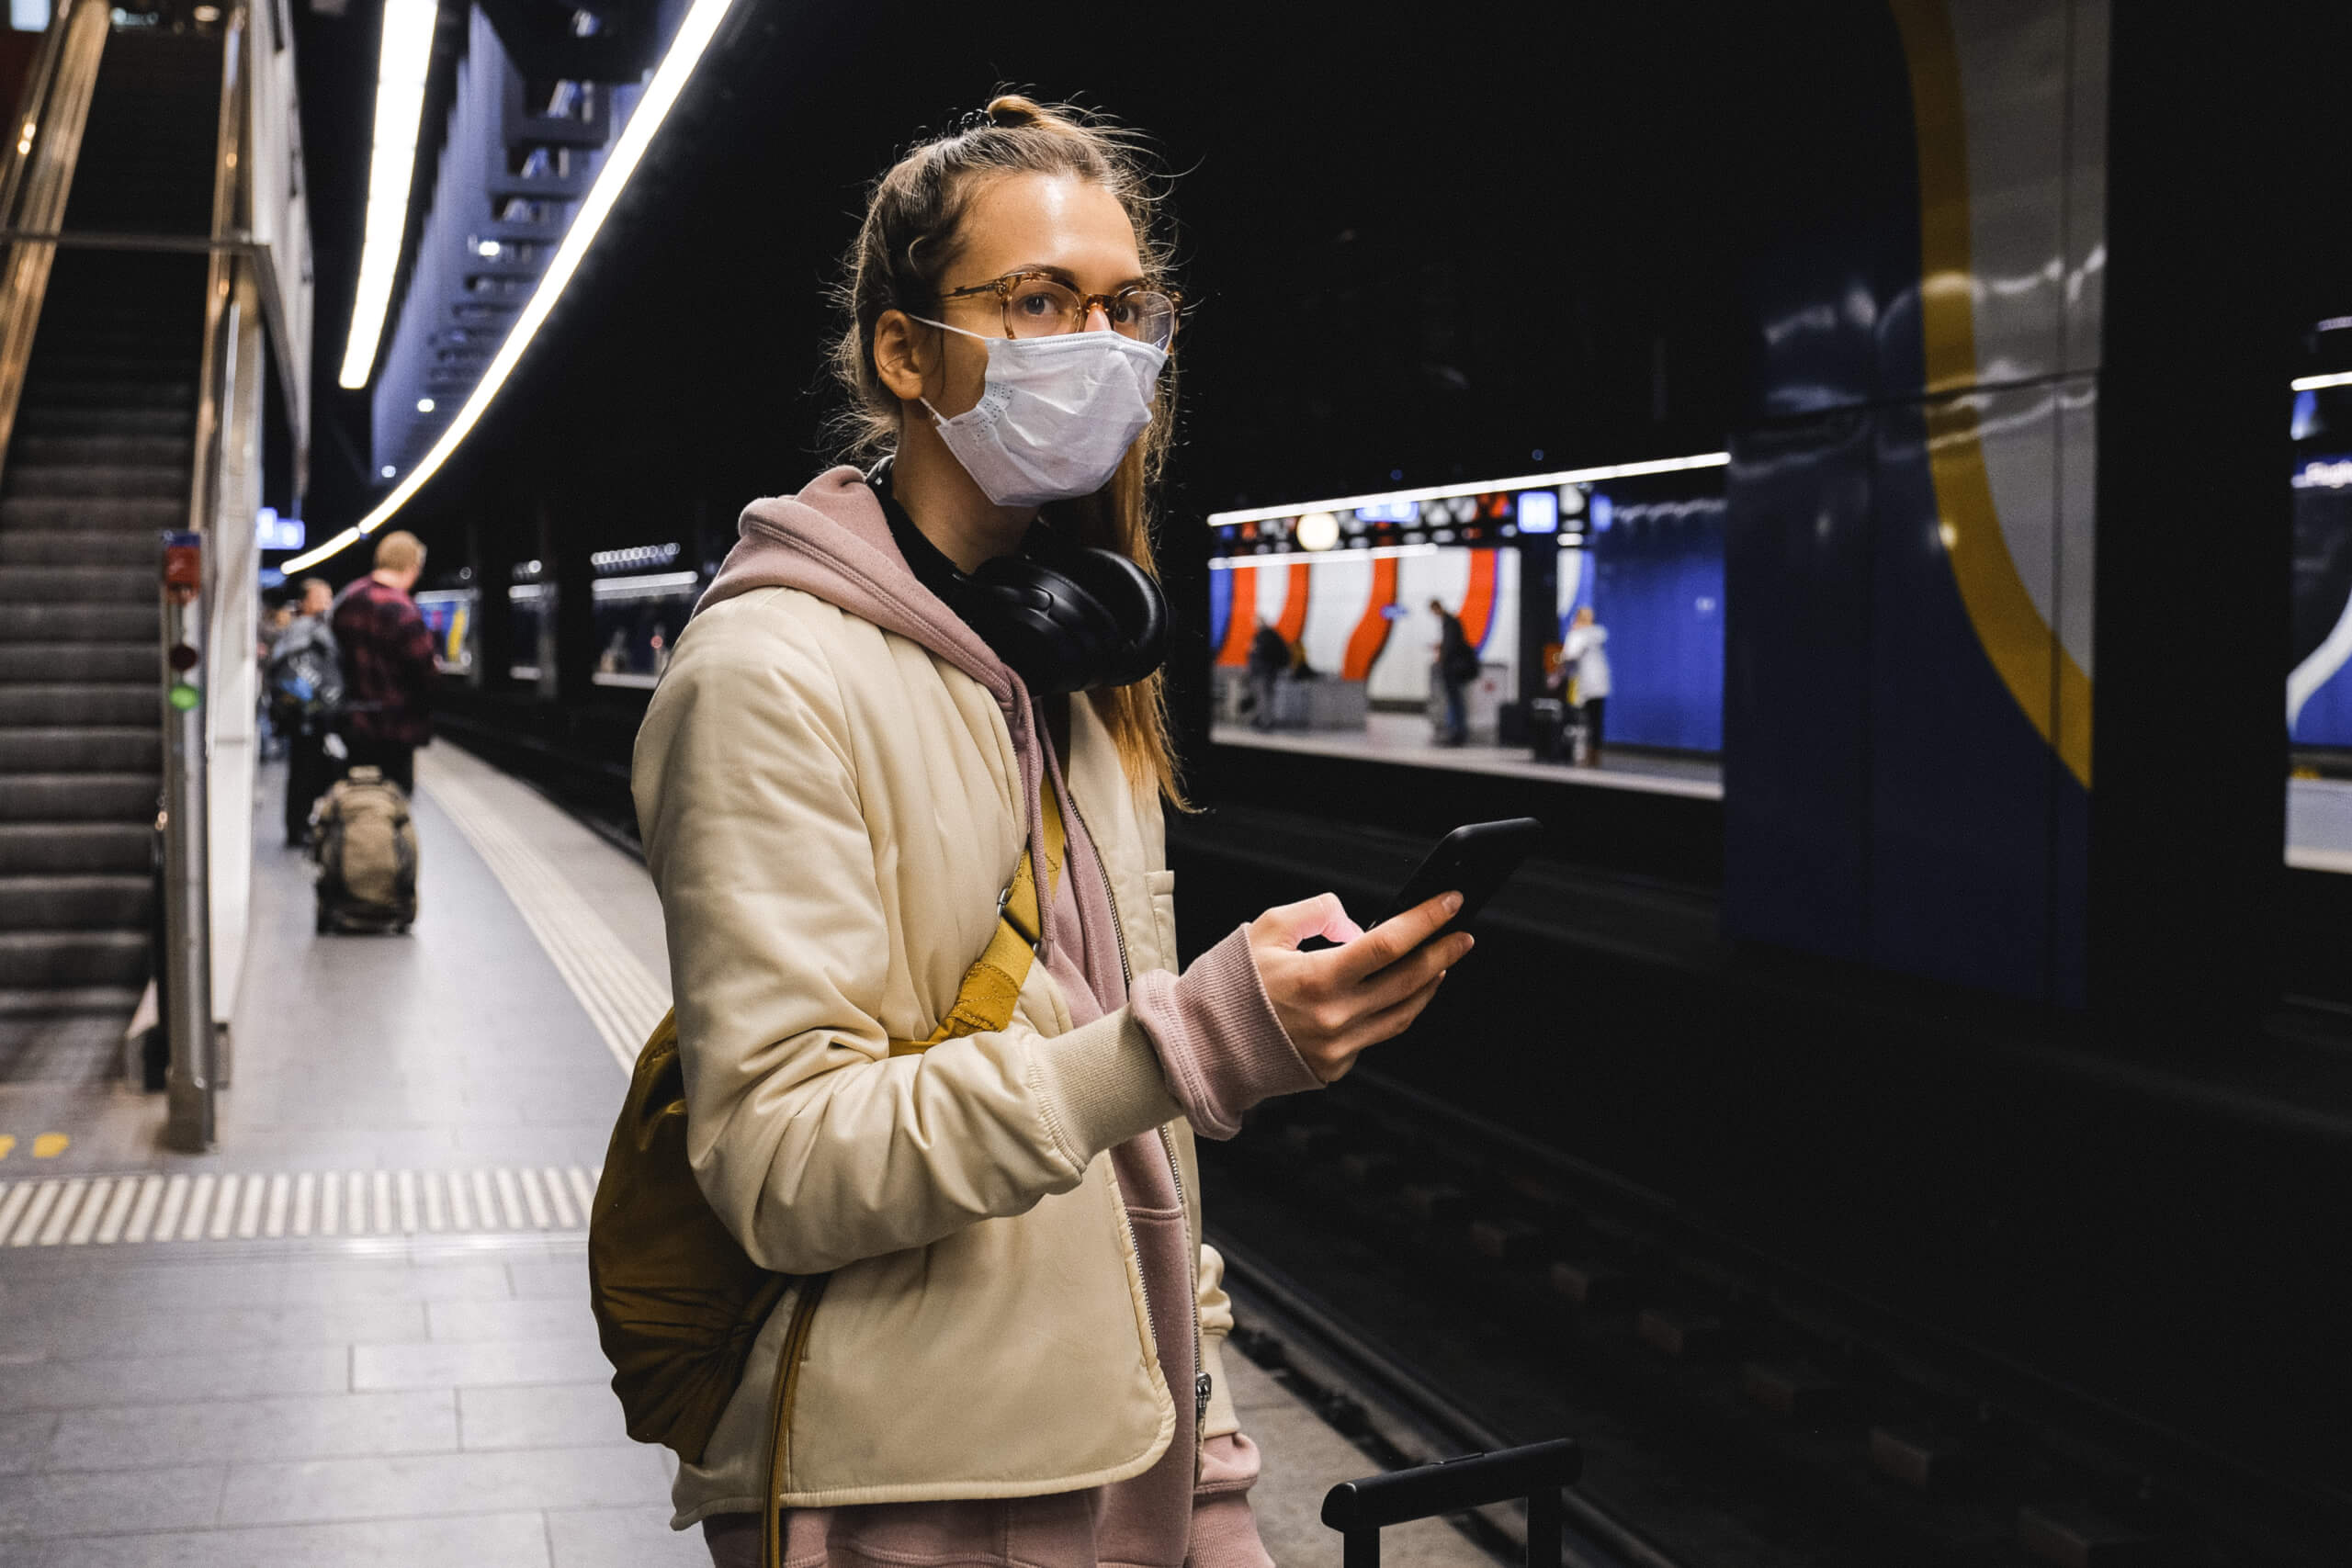 a female commuter wearing headphones and holding her phone waits for her train on the platform